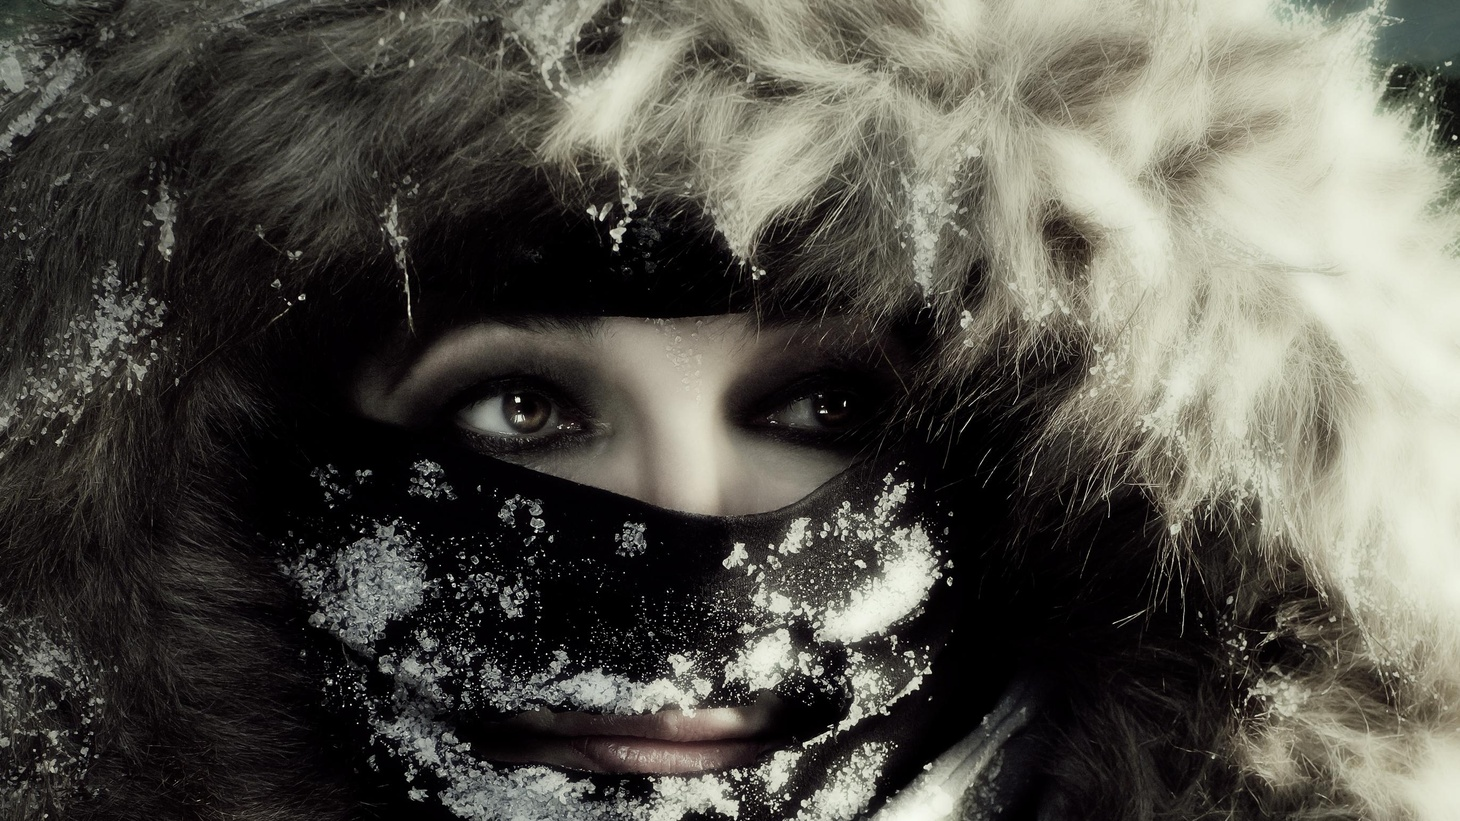 50 Words For Snow will be available to stream on demand from November 14, 2011 through November 22, 2011. The album will be released on November 21, 2011.